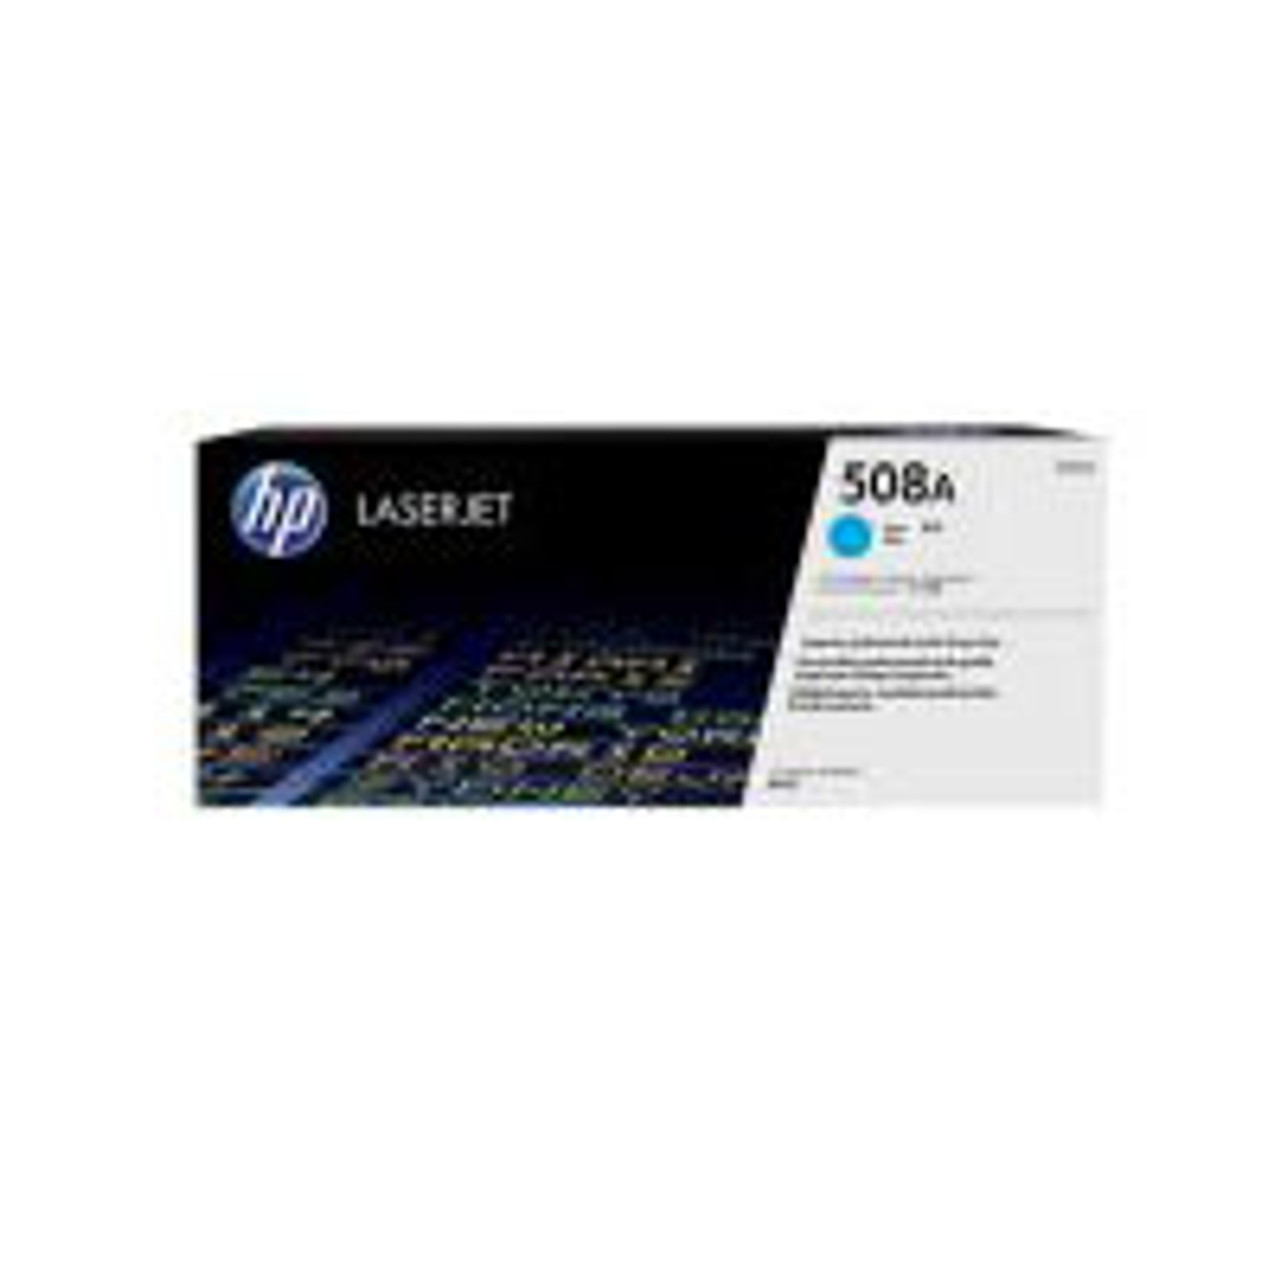 Image for HP #508A Cyan Toner Cartridge 5000 pages (CF361A) CX Computer Superstore